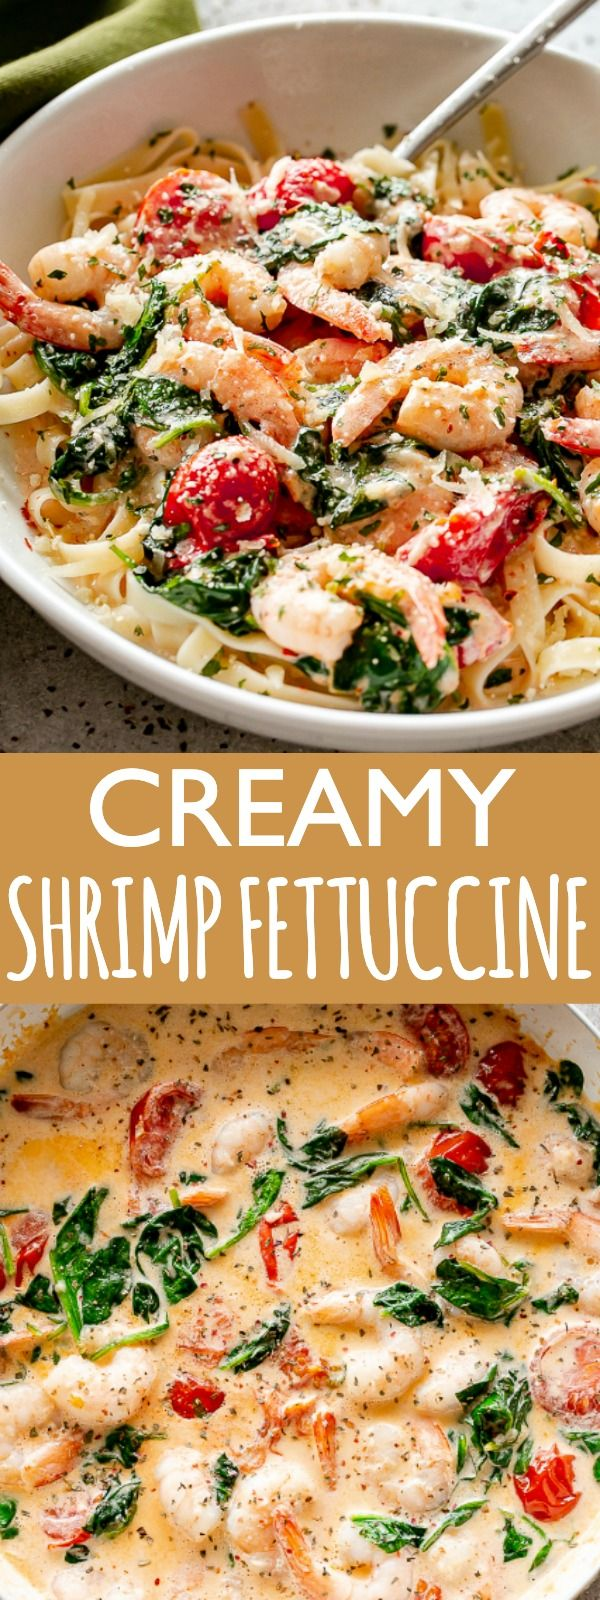 Creamy Shrimp Fettuccine | Quick & Easy Shrimp Pasta Recipe